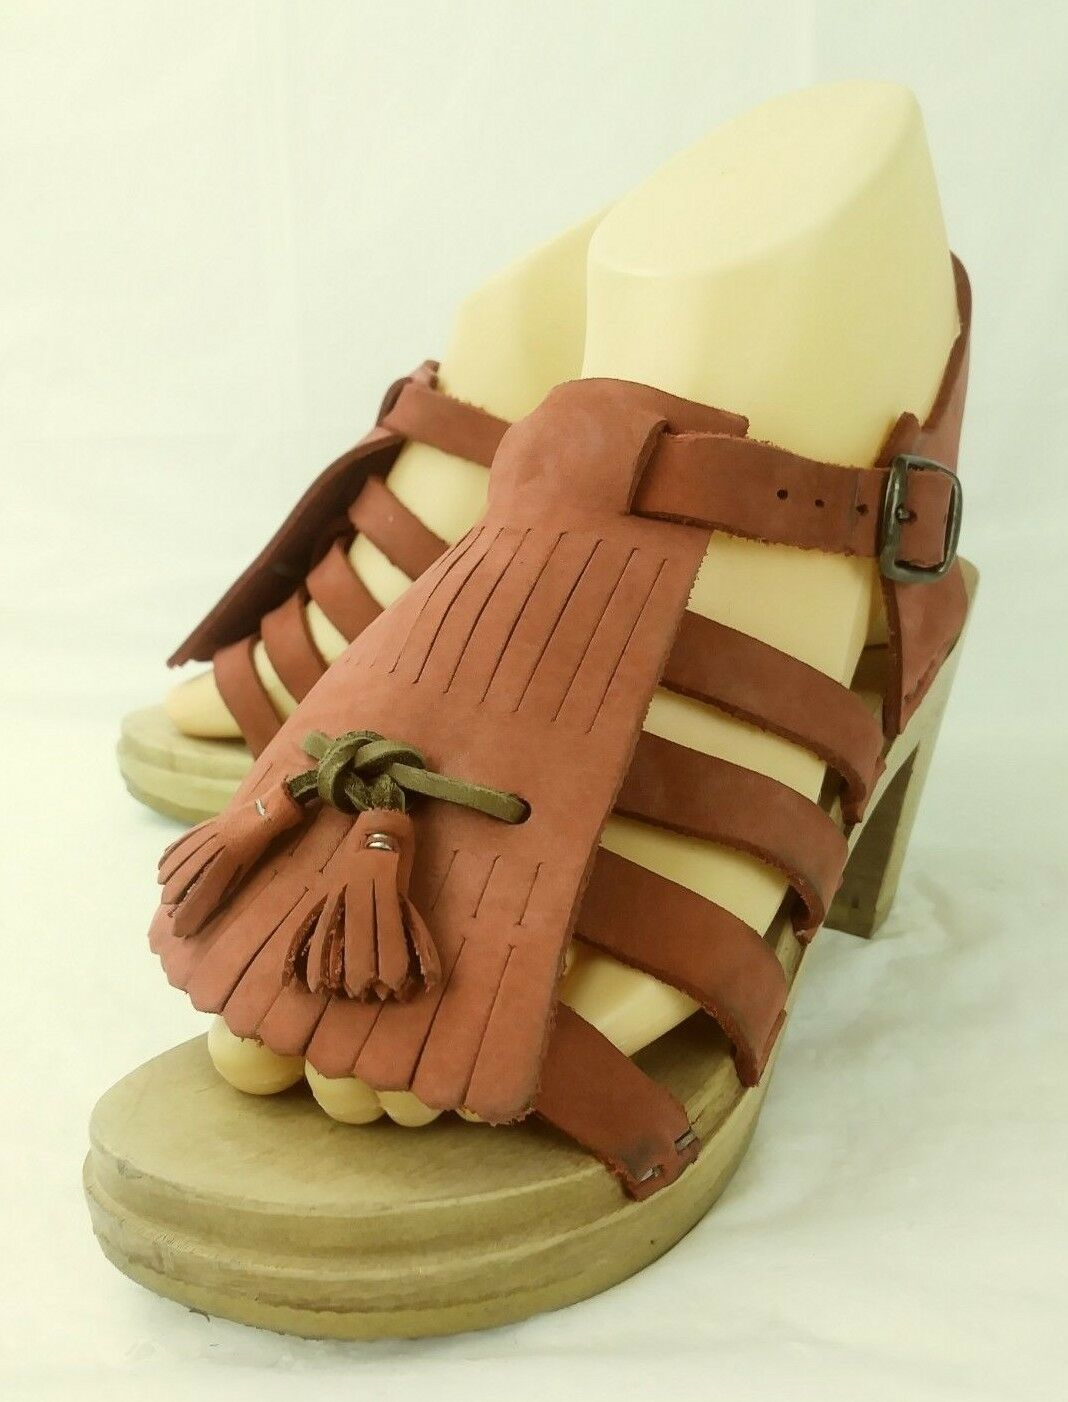 femmes chaussures Sandals EU 36 rouge Leather Wood Heel Kiltie Tassels Summer 5435